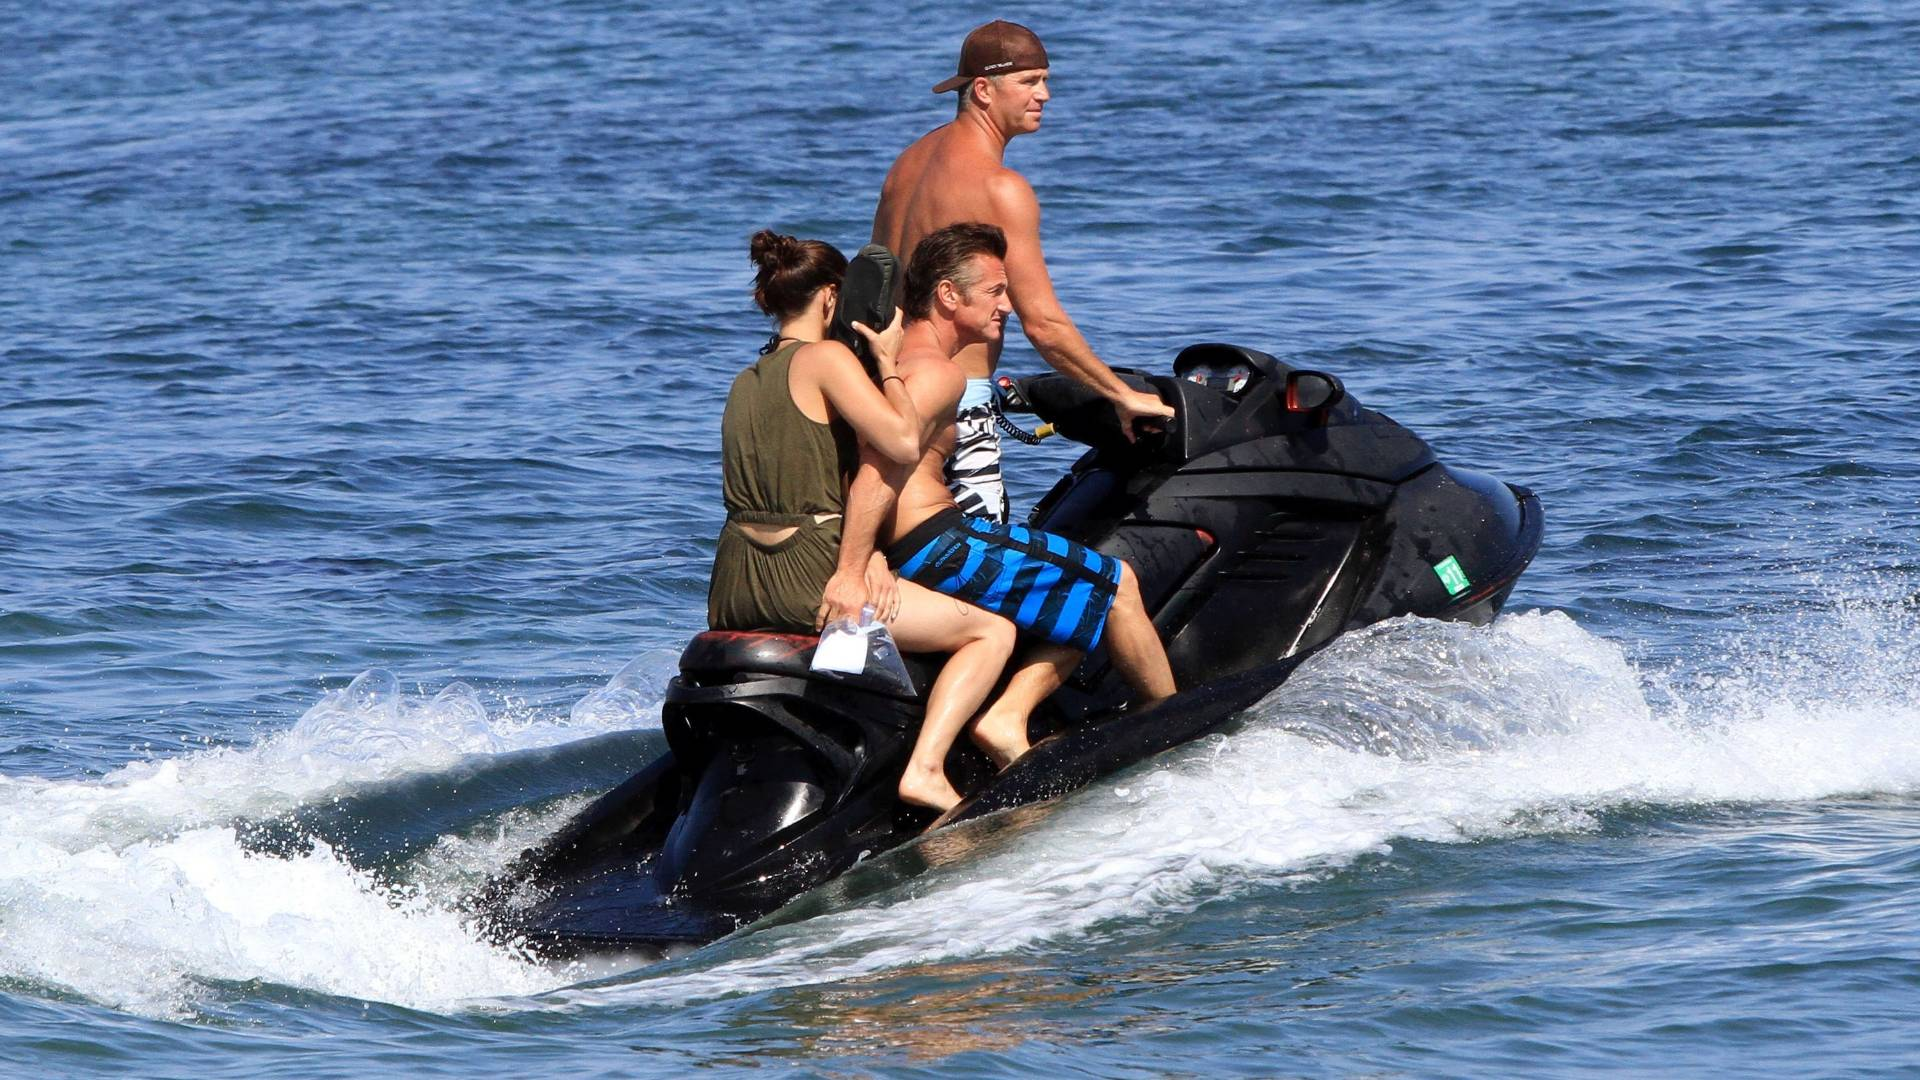 Sean Penn  fotografado com nova namorada durante passeio de jet ski em praia de Malibu (4/7/2011)